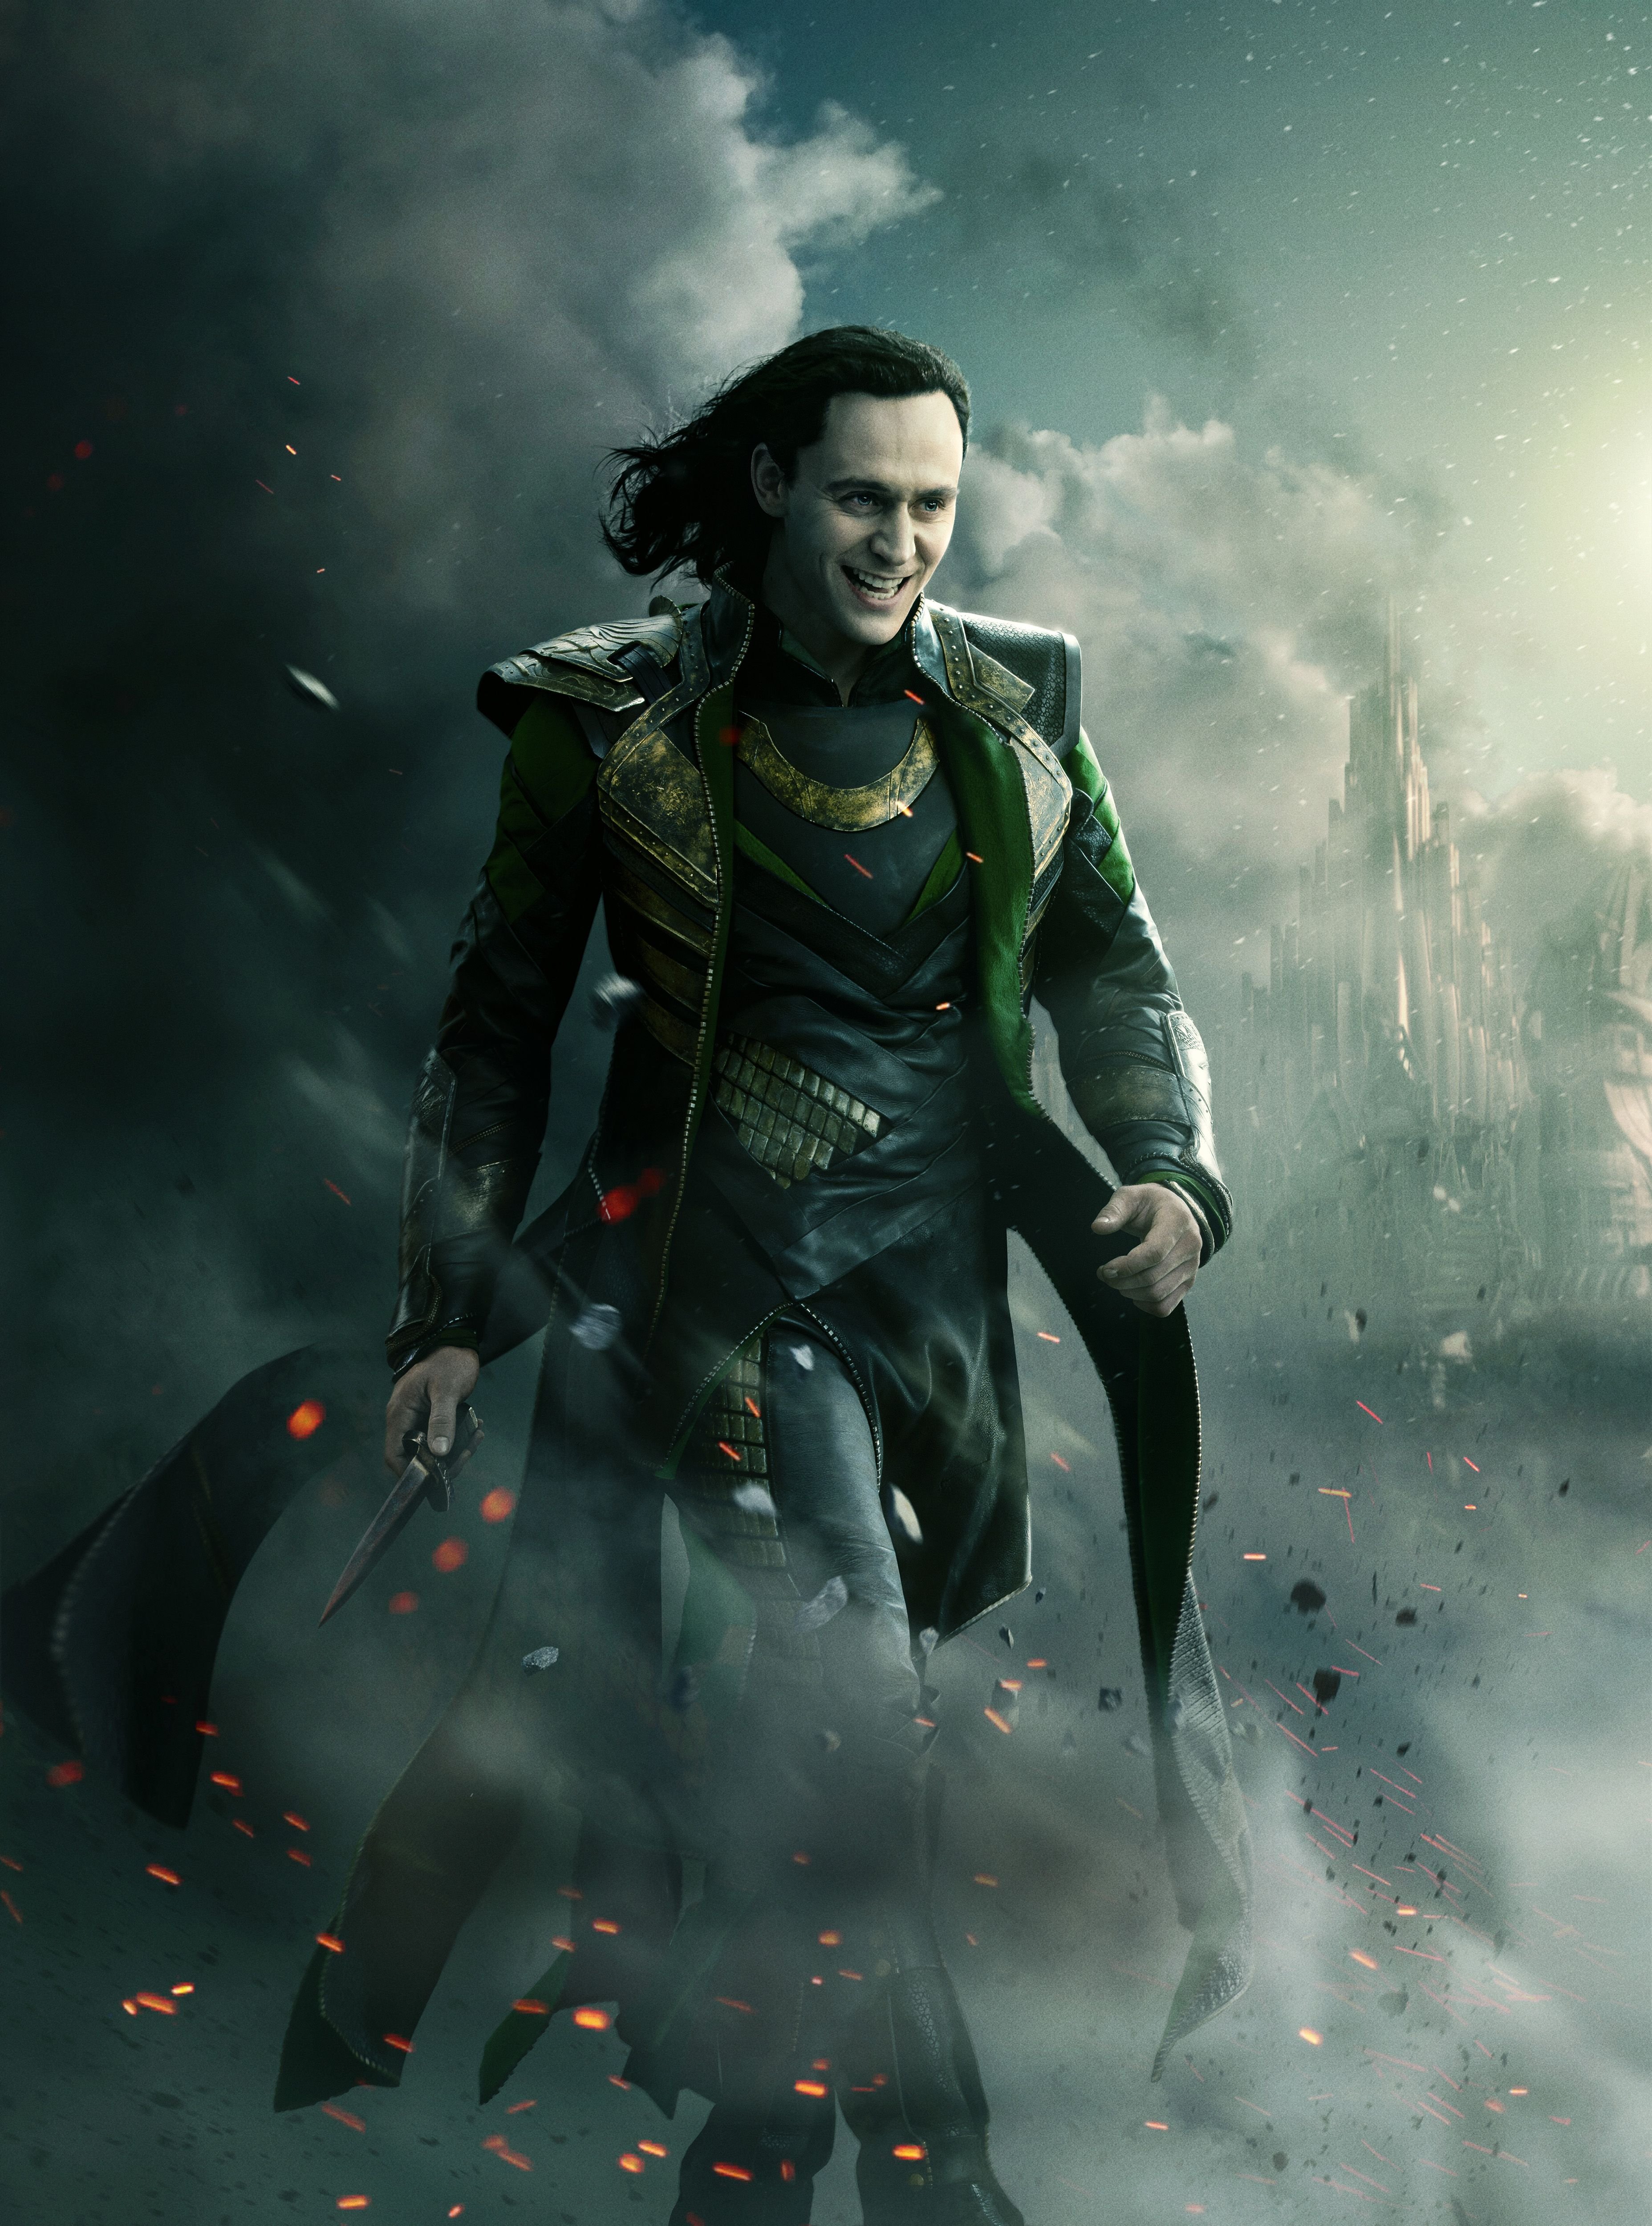 Poster of Tom Hiddleston, Alan Taylor's Thor: The Dark World (UHQ)